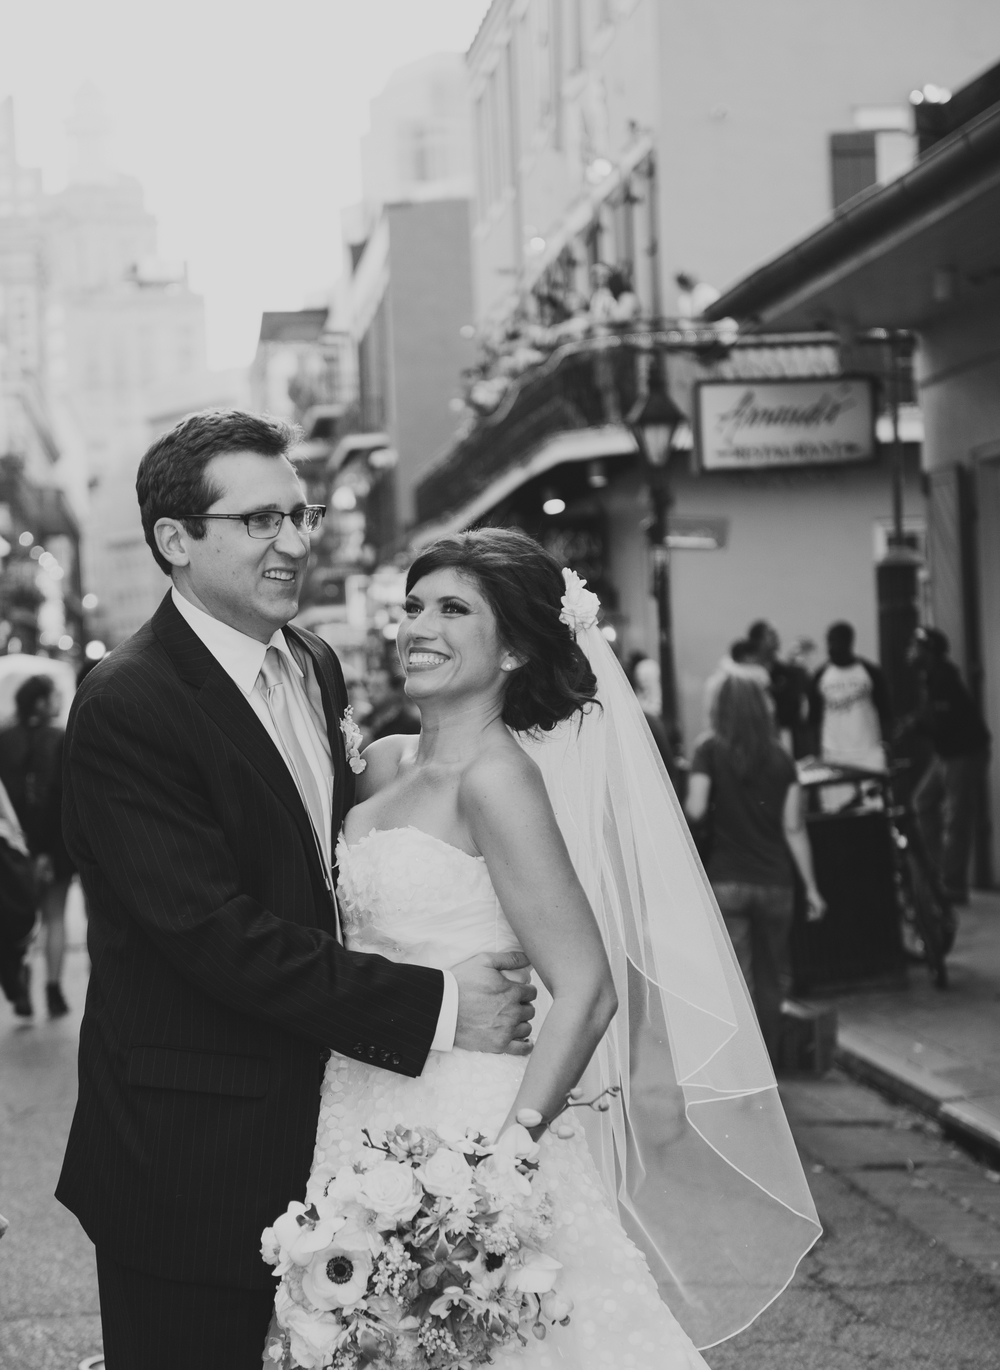 NEW ORLEANS, LA - March 16, 2013:  McDougal-Bennitt Wedding at the Royal Sonesta on Bourbon Street. Photo by Adrienne Battistella, 2013